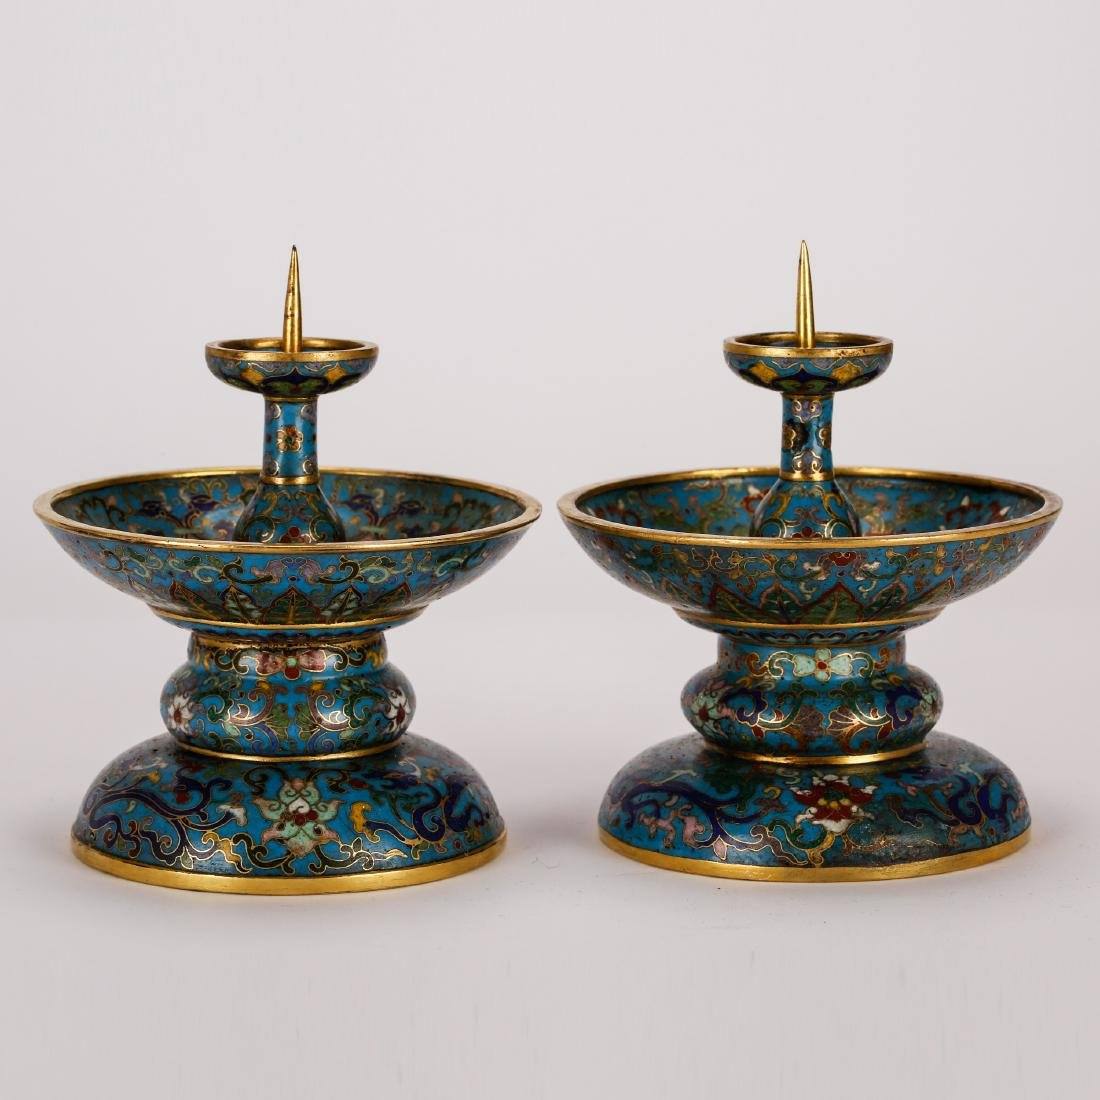 CHINESE CLOISONNE ENAMEL CANDLE STANDS, PAIR